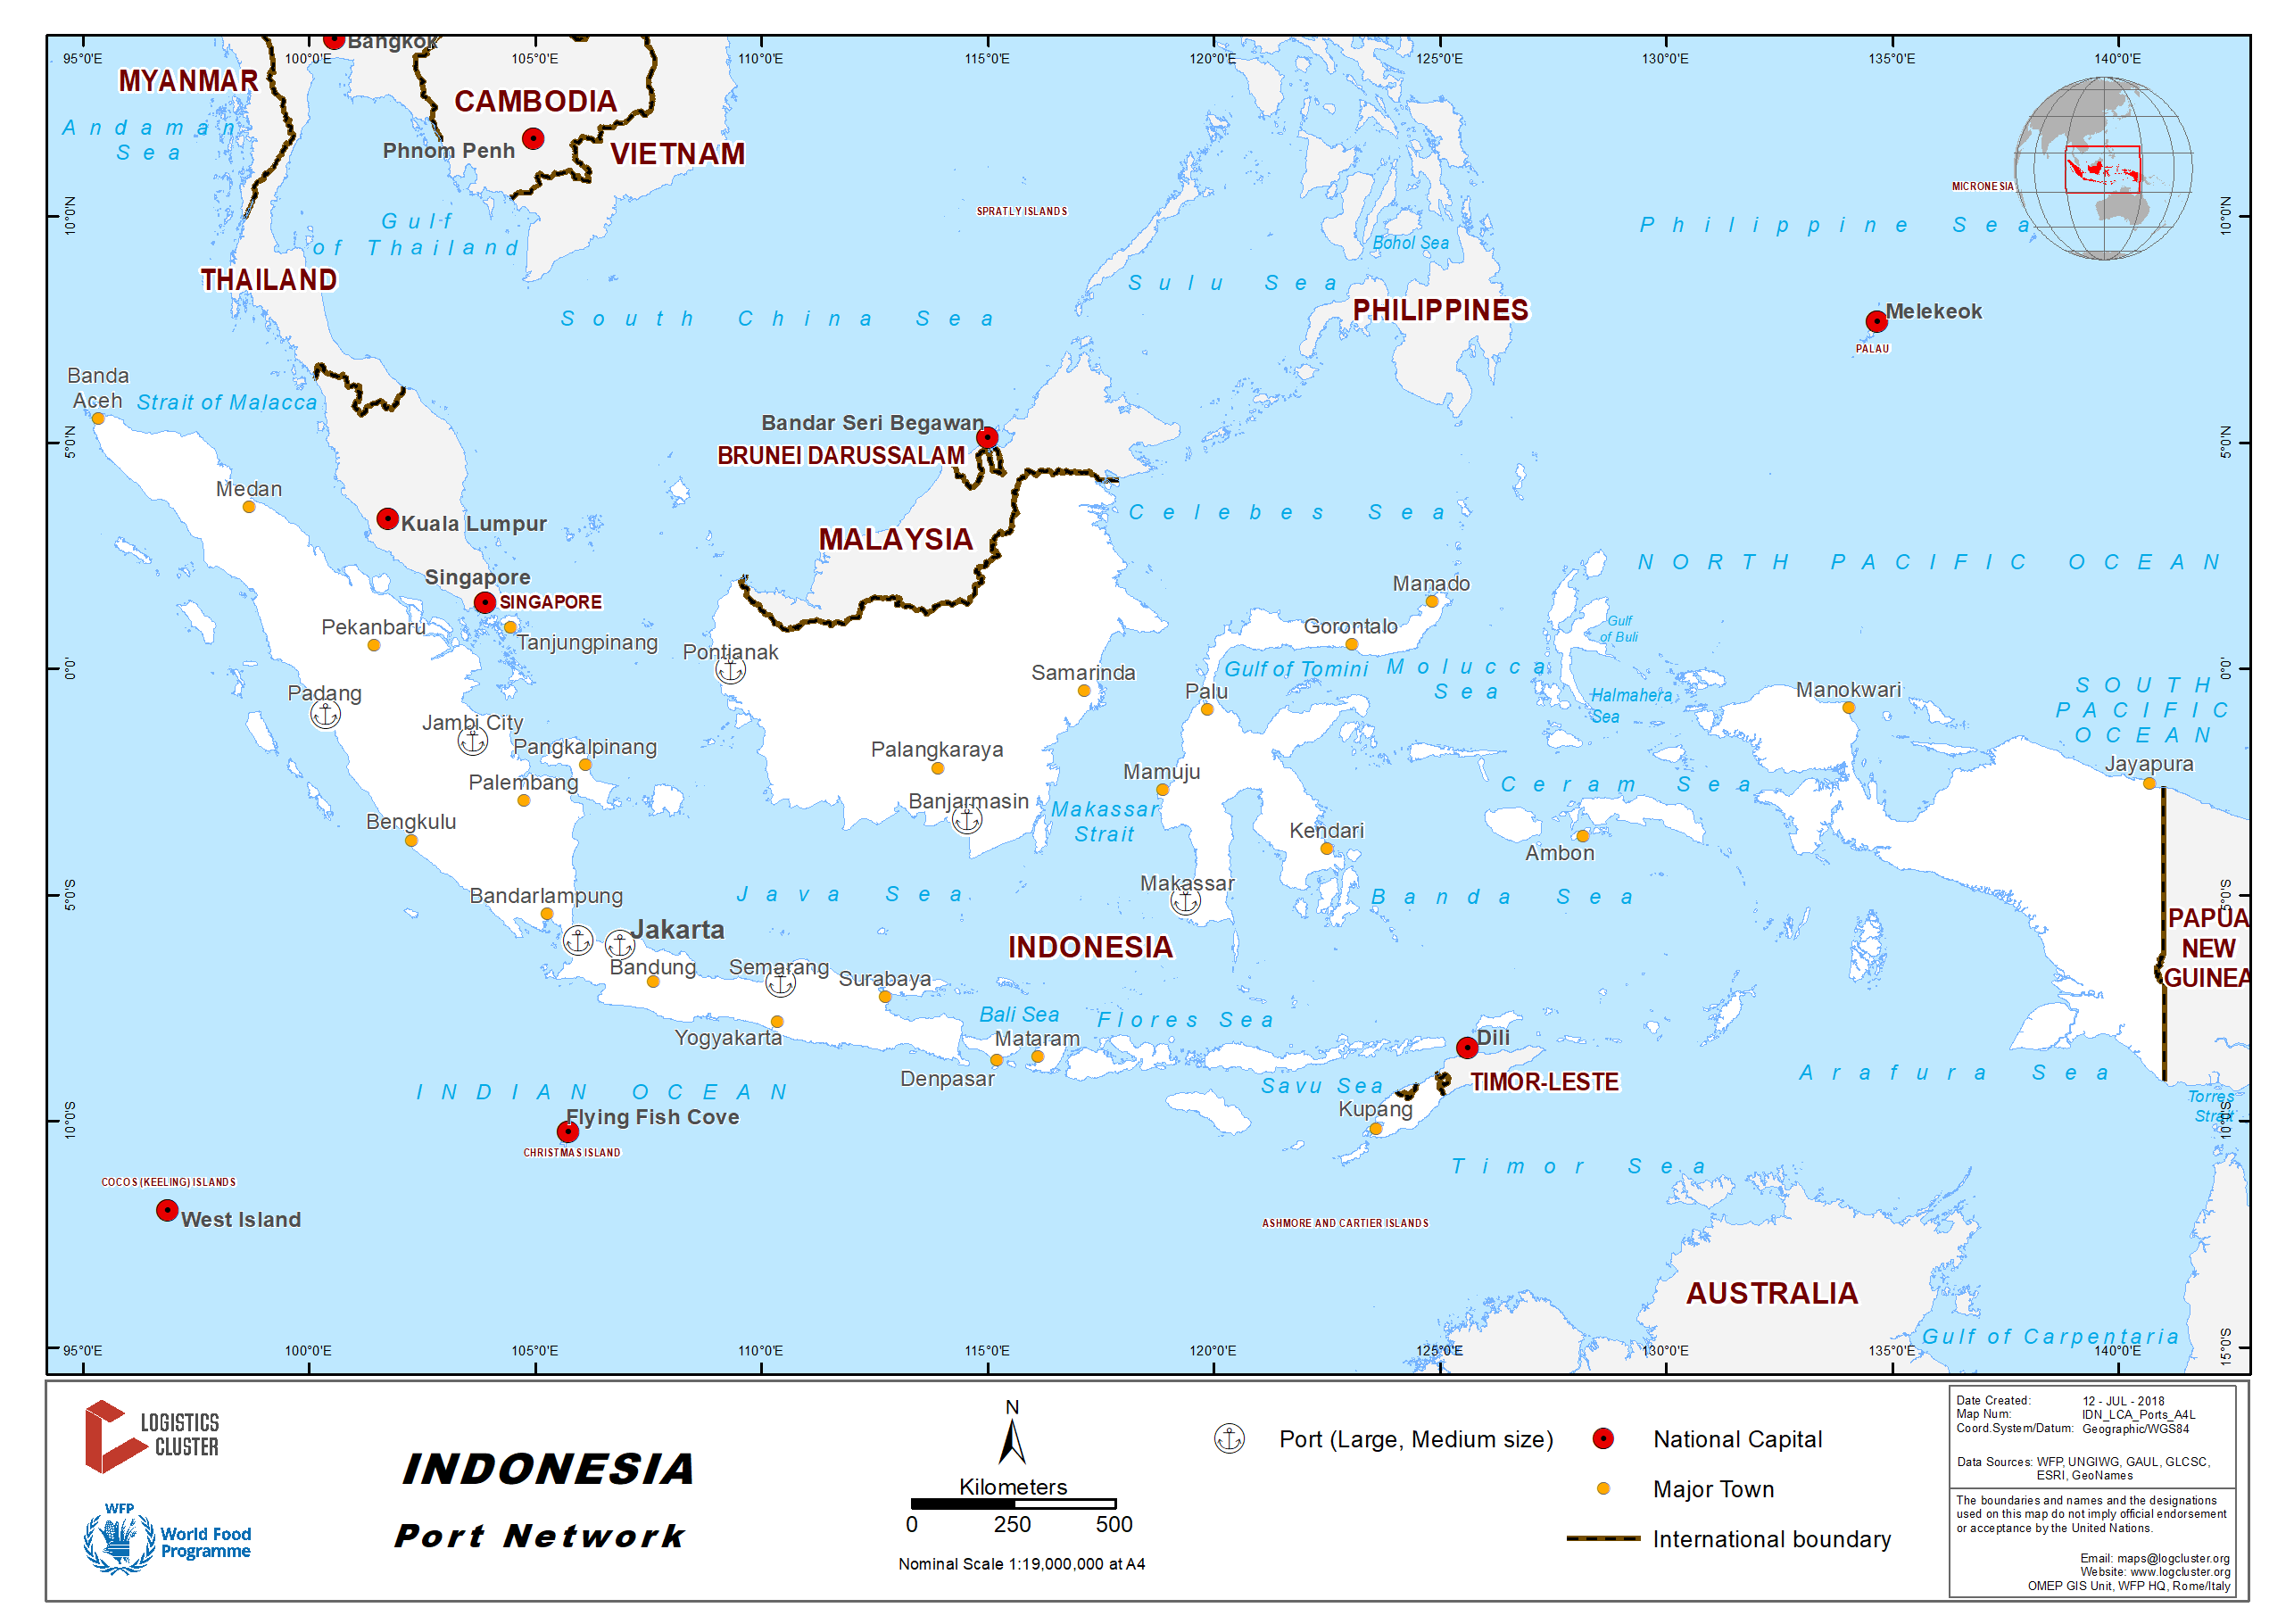 Indonesia Ports Map